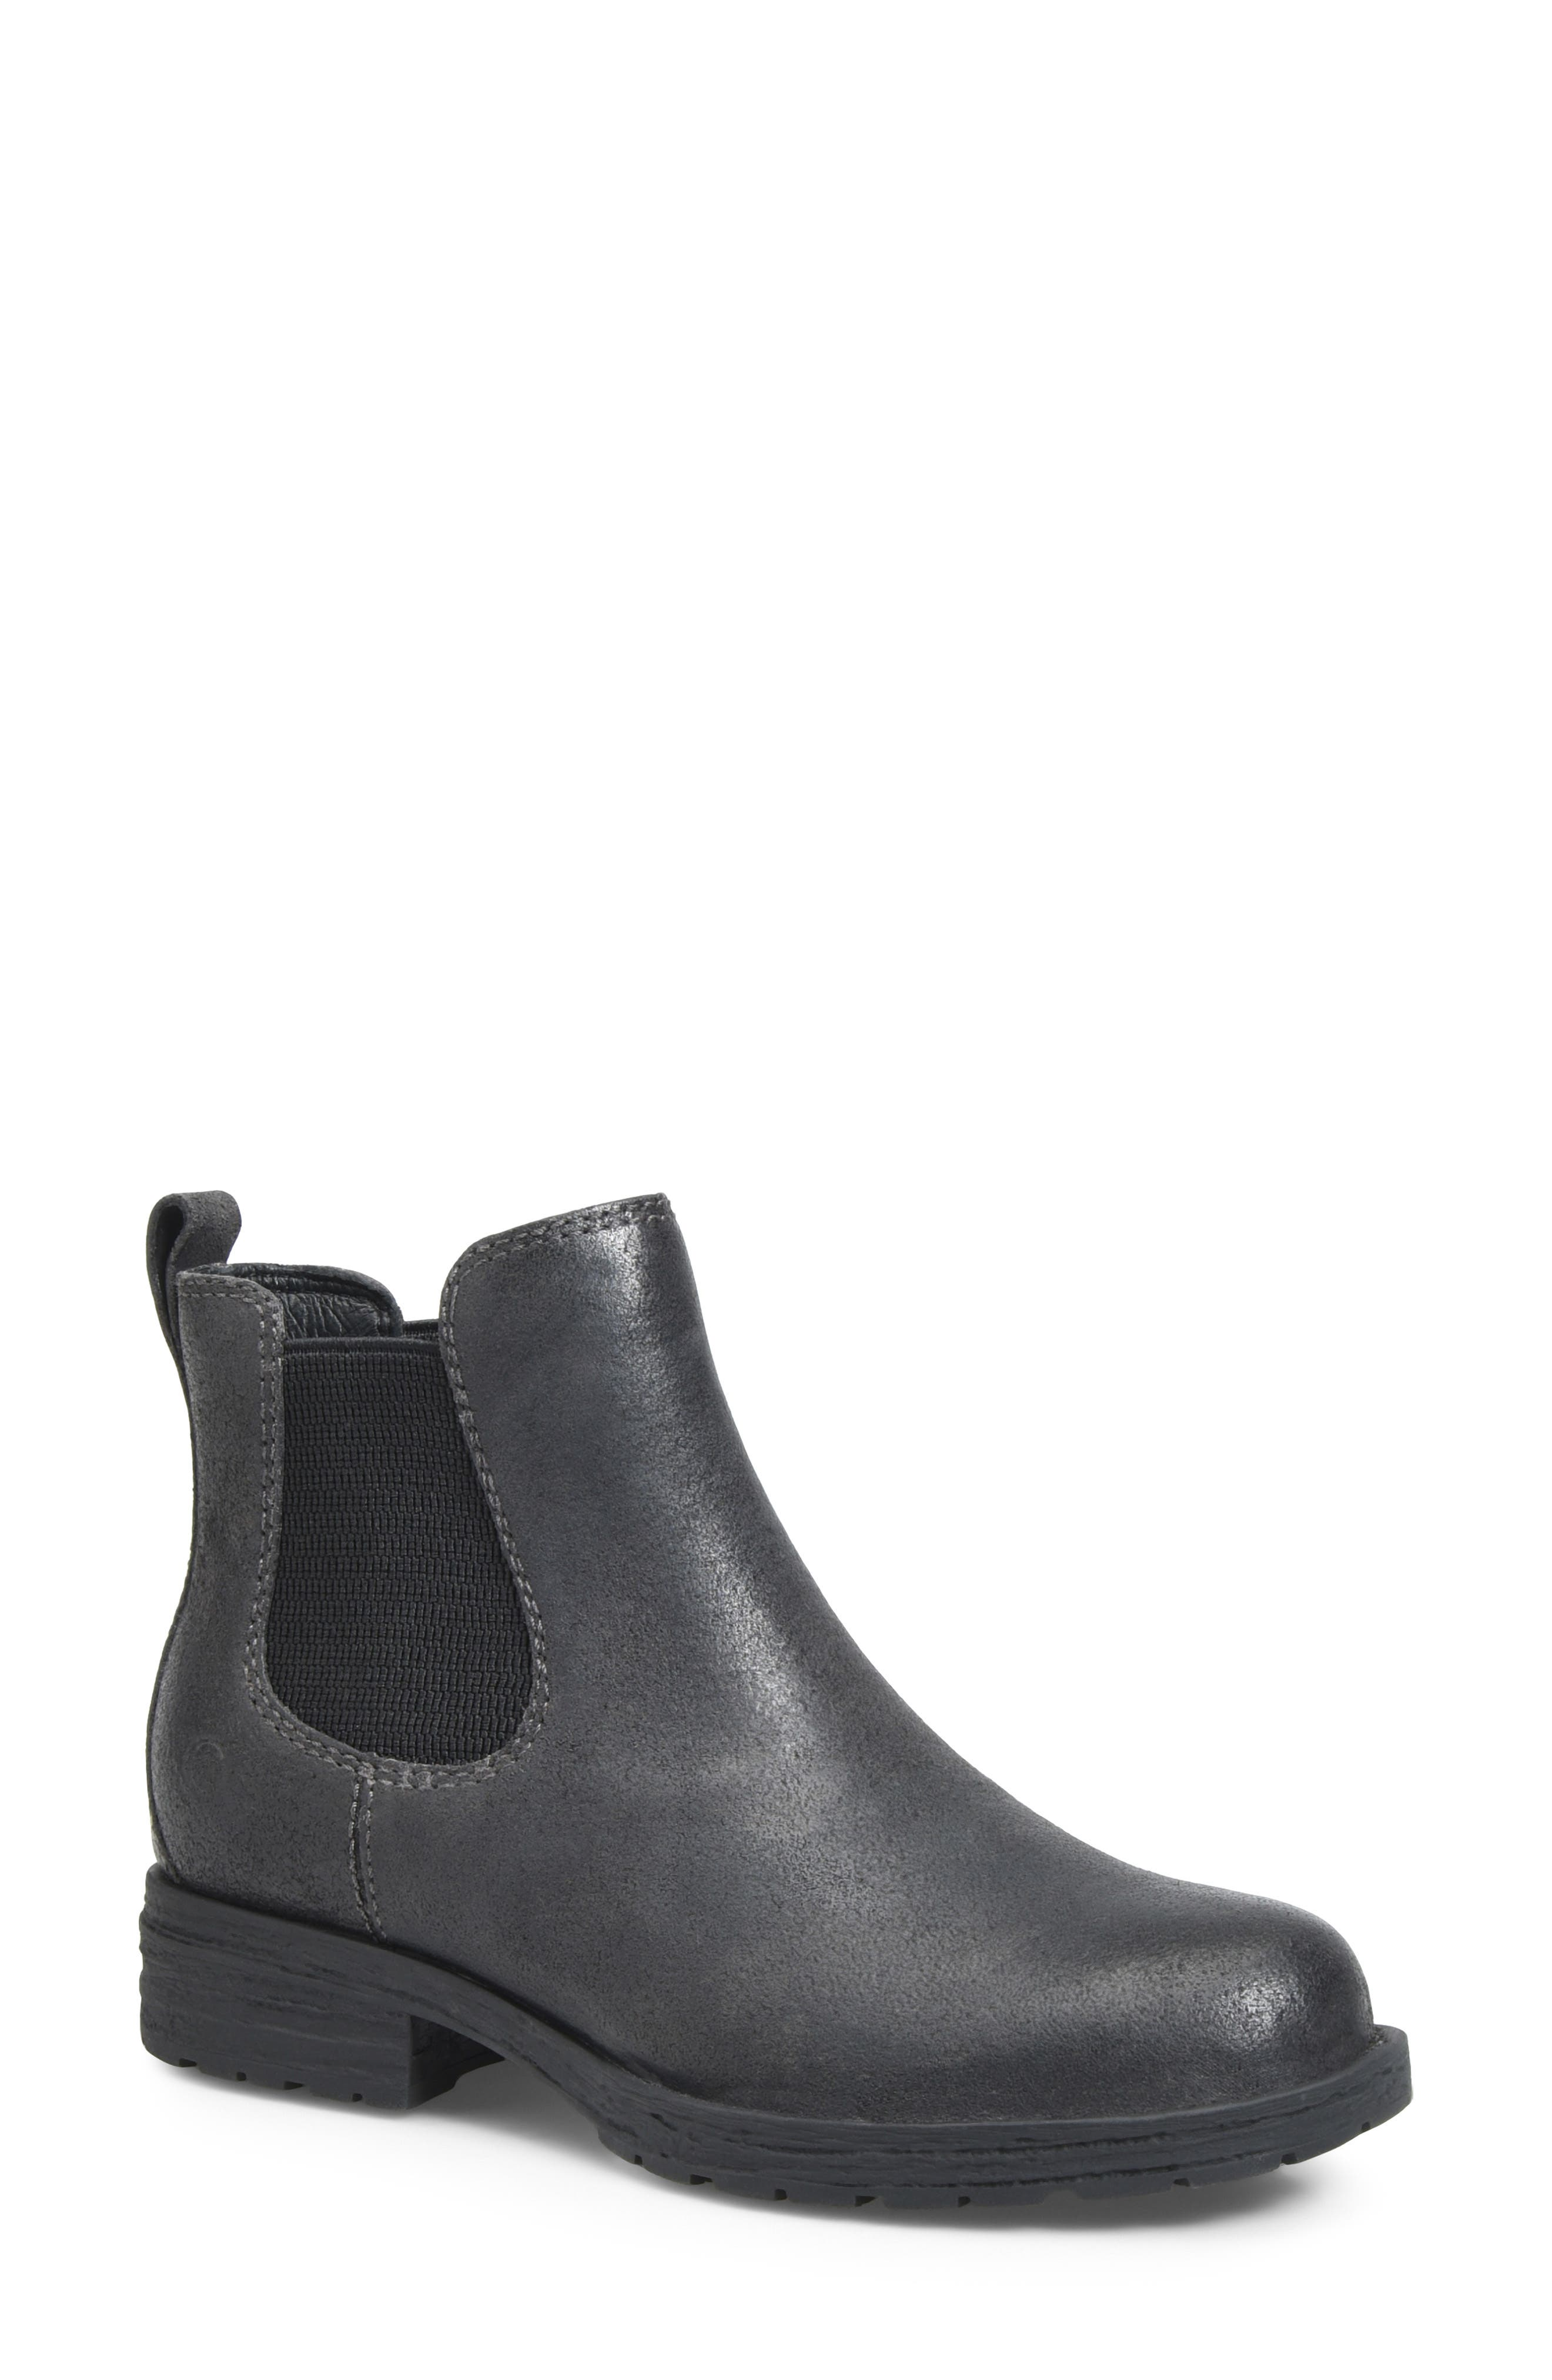 Cove Waterproof Chelsea Boot,                         Main,                         color, DARK GREY DISTRESSED LEATHER